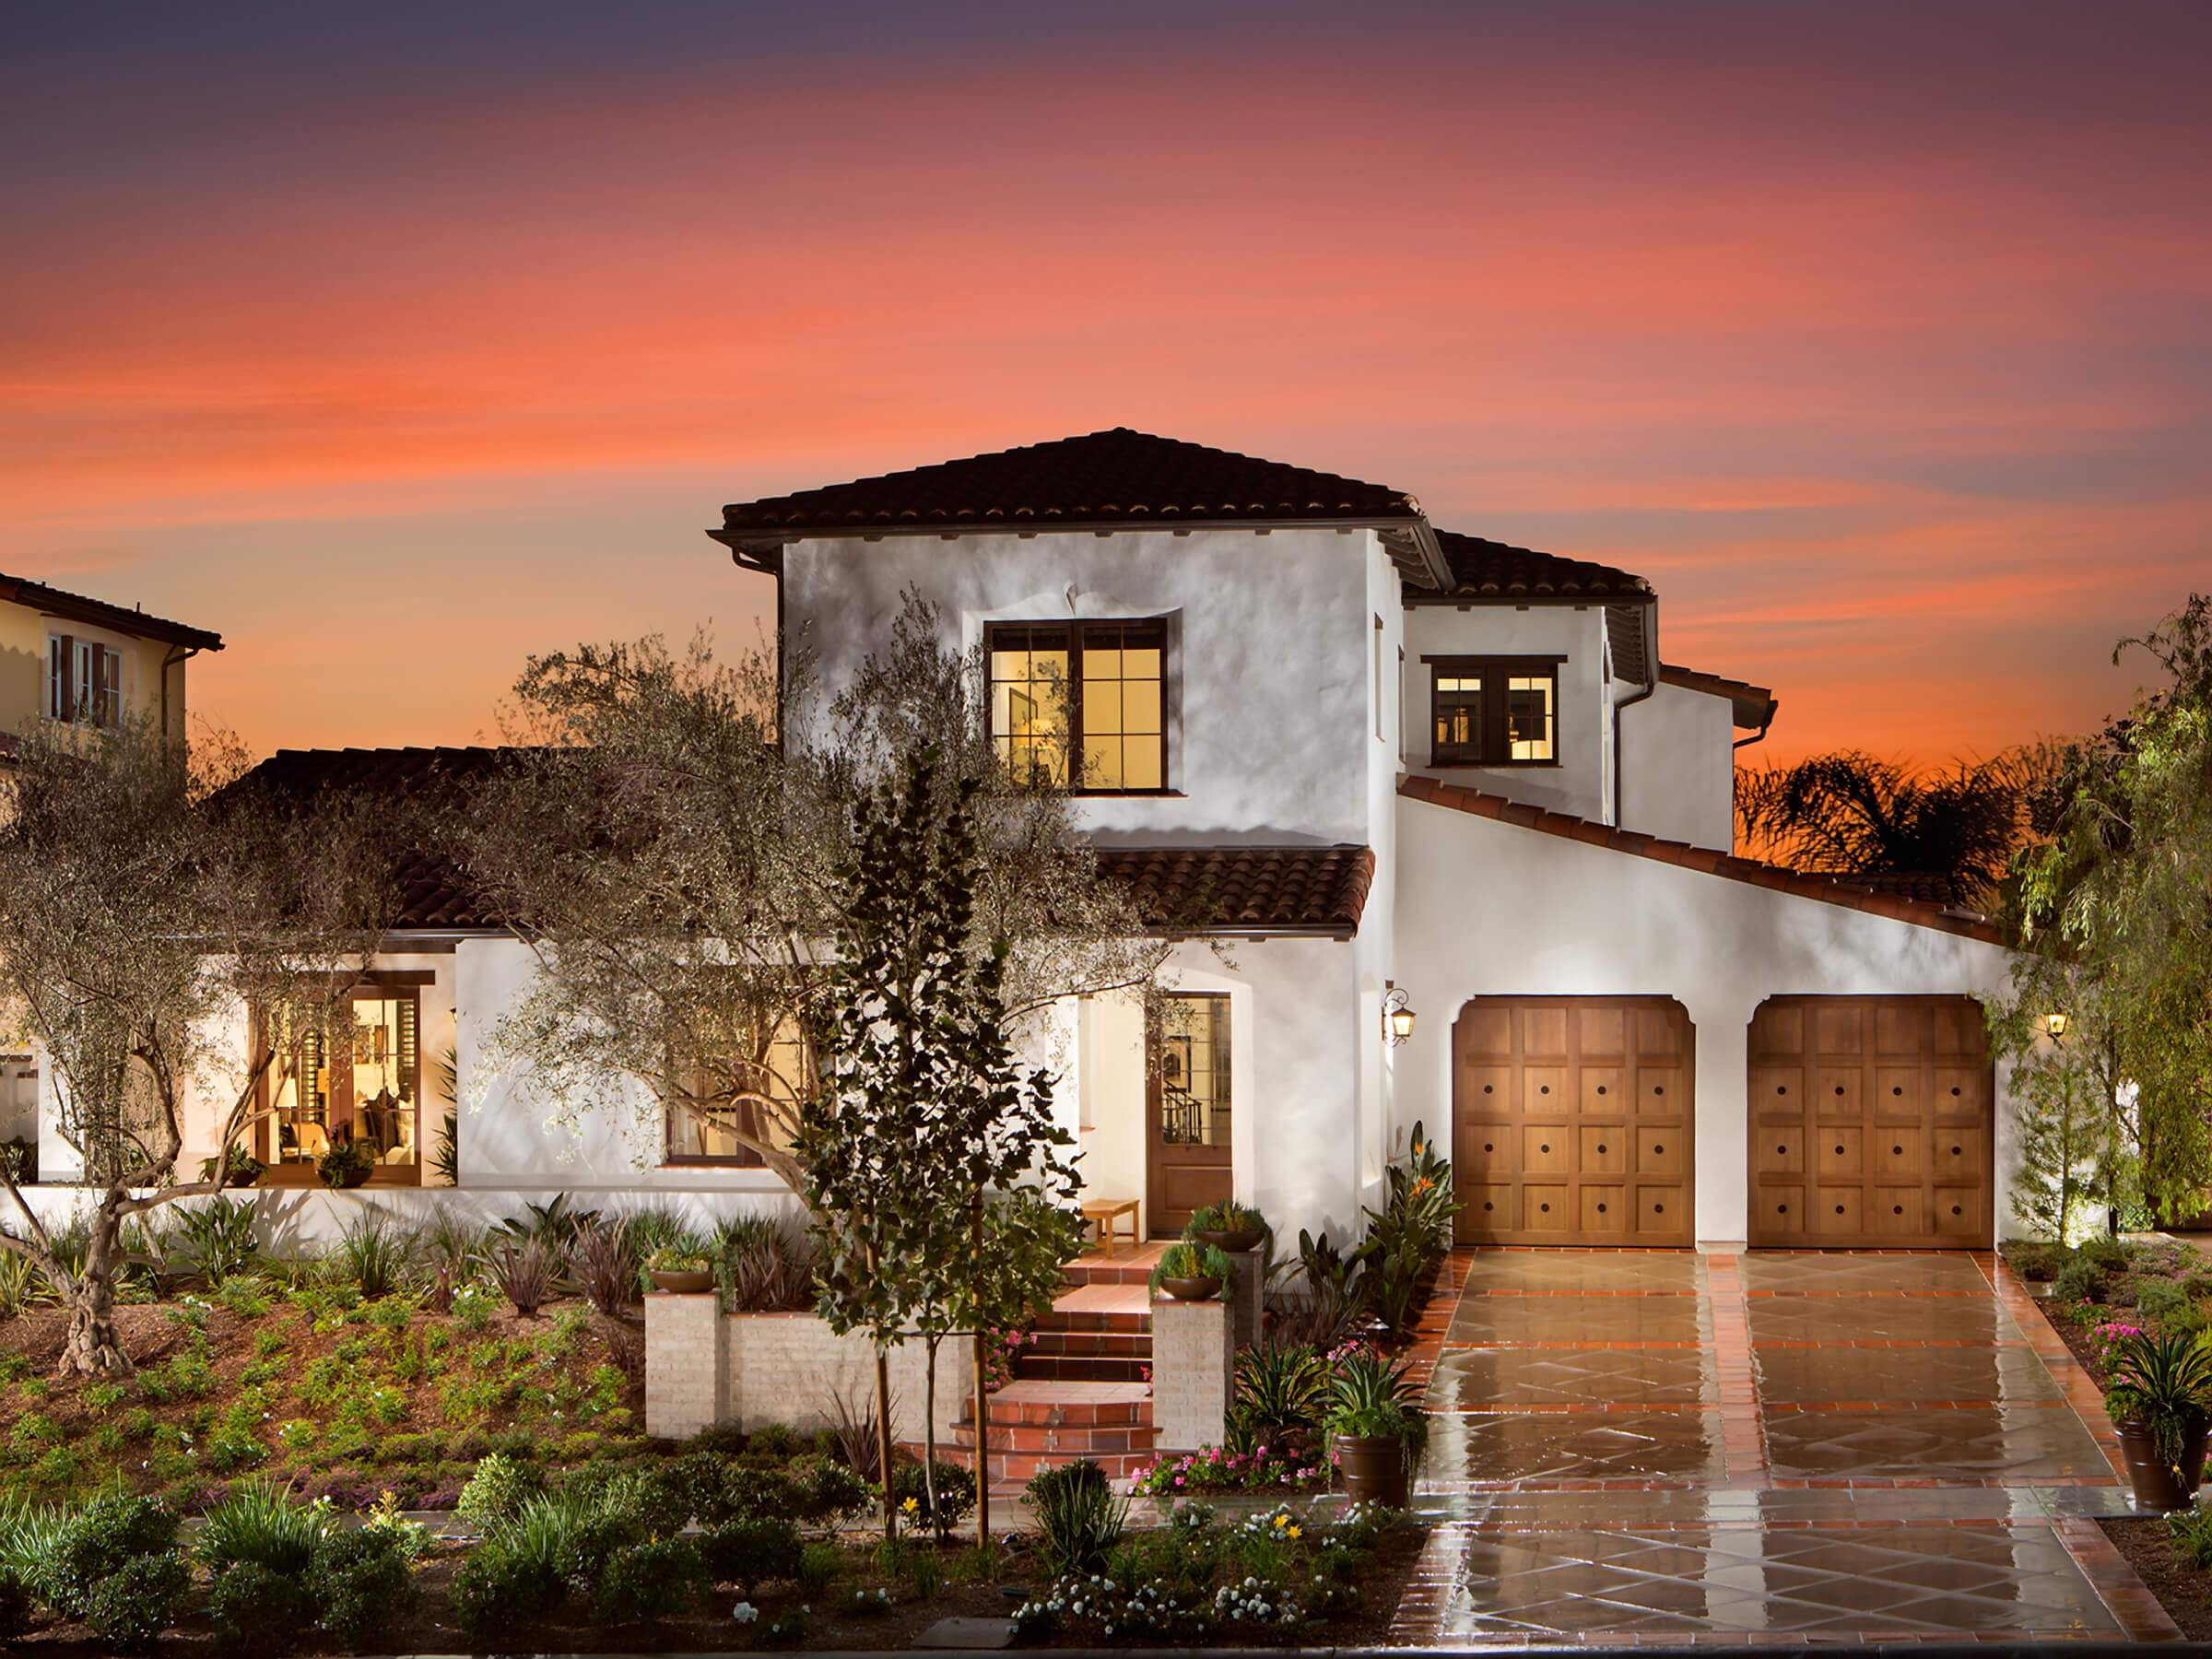 Additional photo for property listing at 63 Bell Pasture Road 63 Bell Pasture Road Ladera Ranch, California 92694 United States